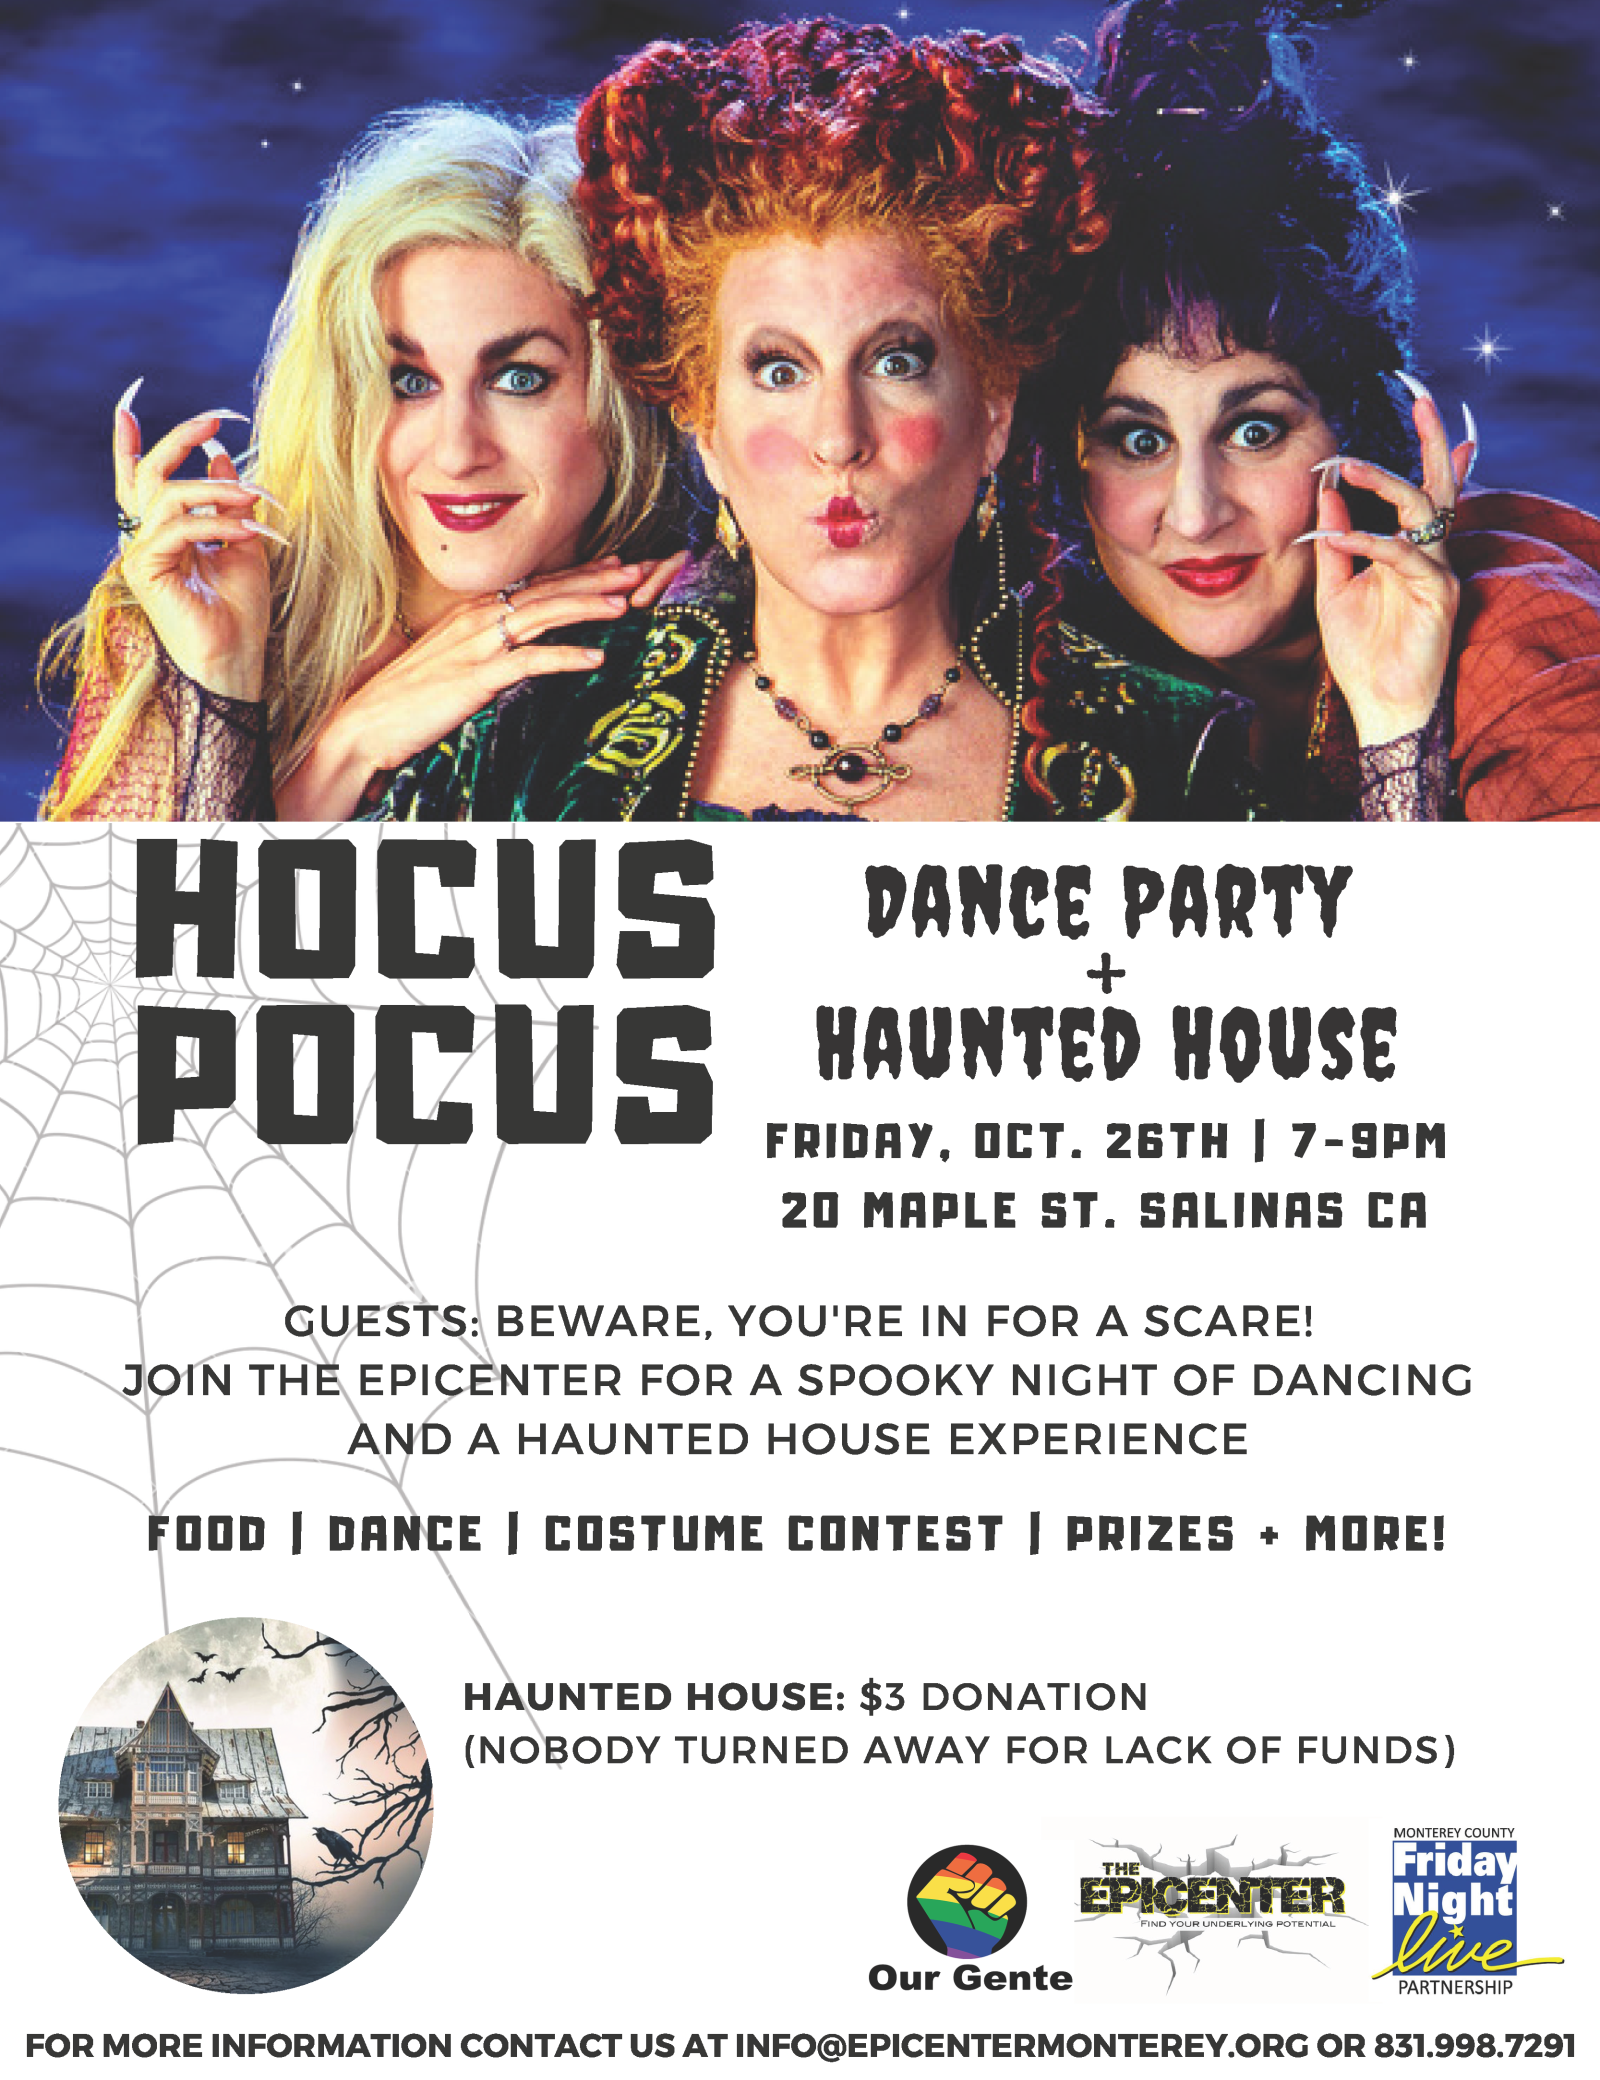 Hocus Pocus Dance Party & Haunted House | Calendar Meeting